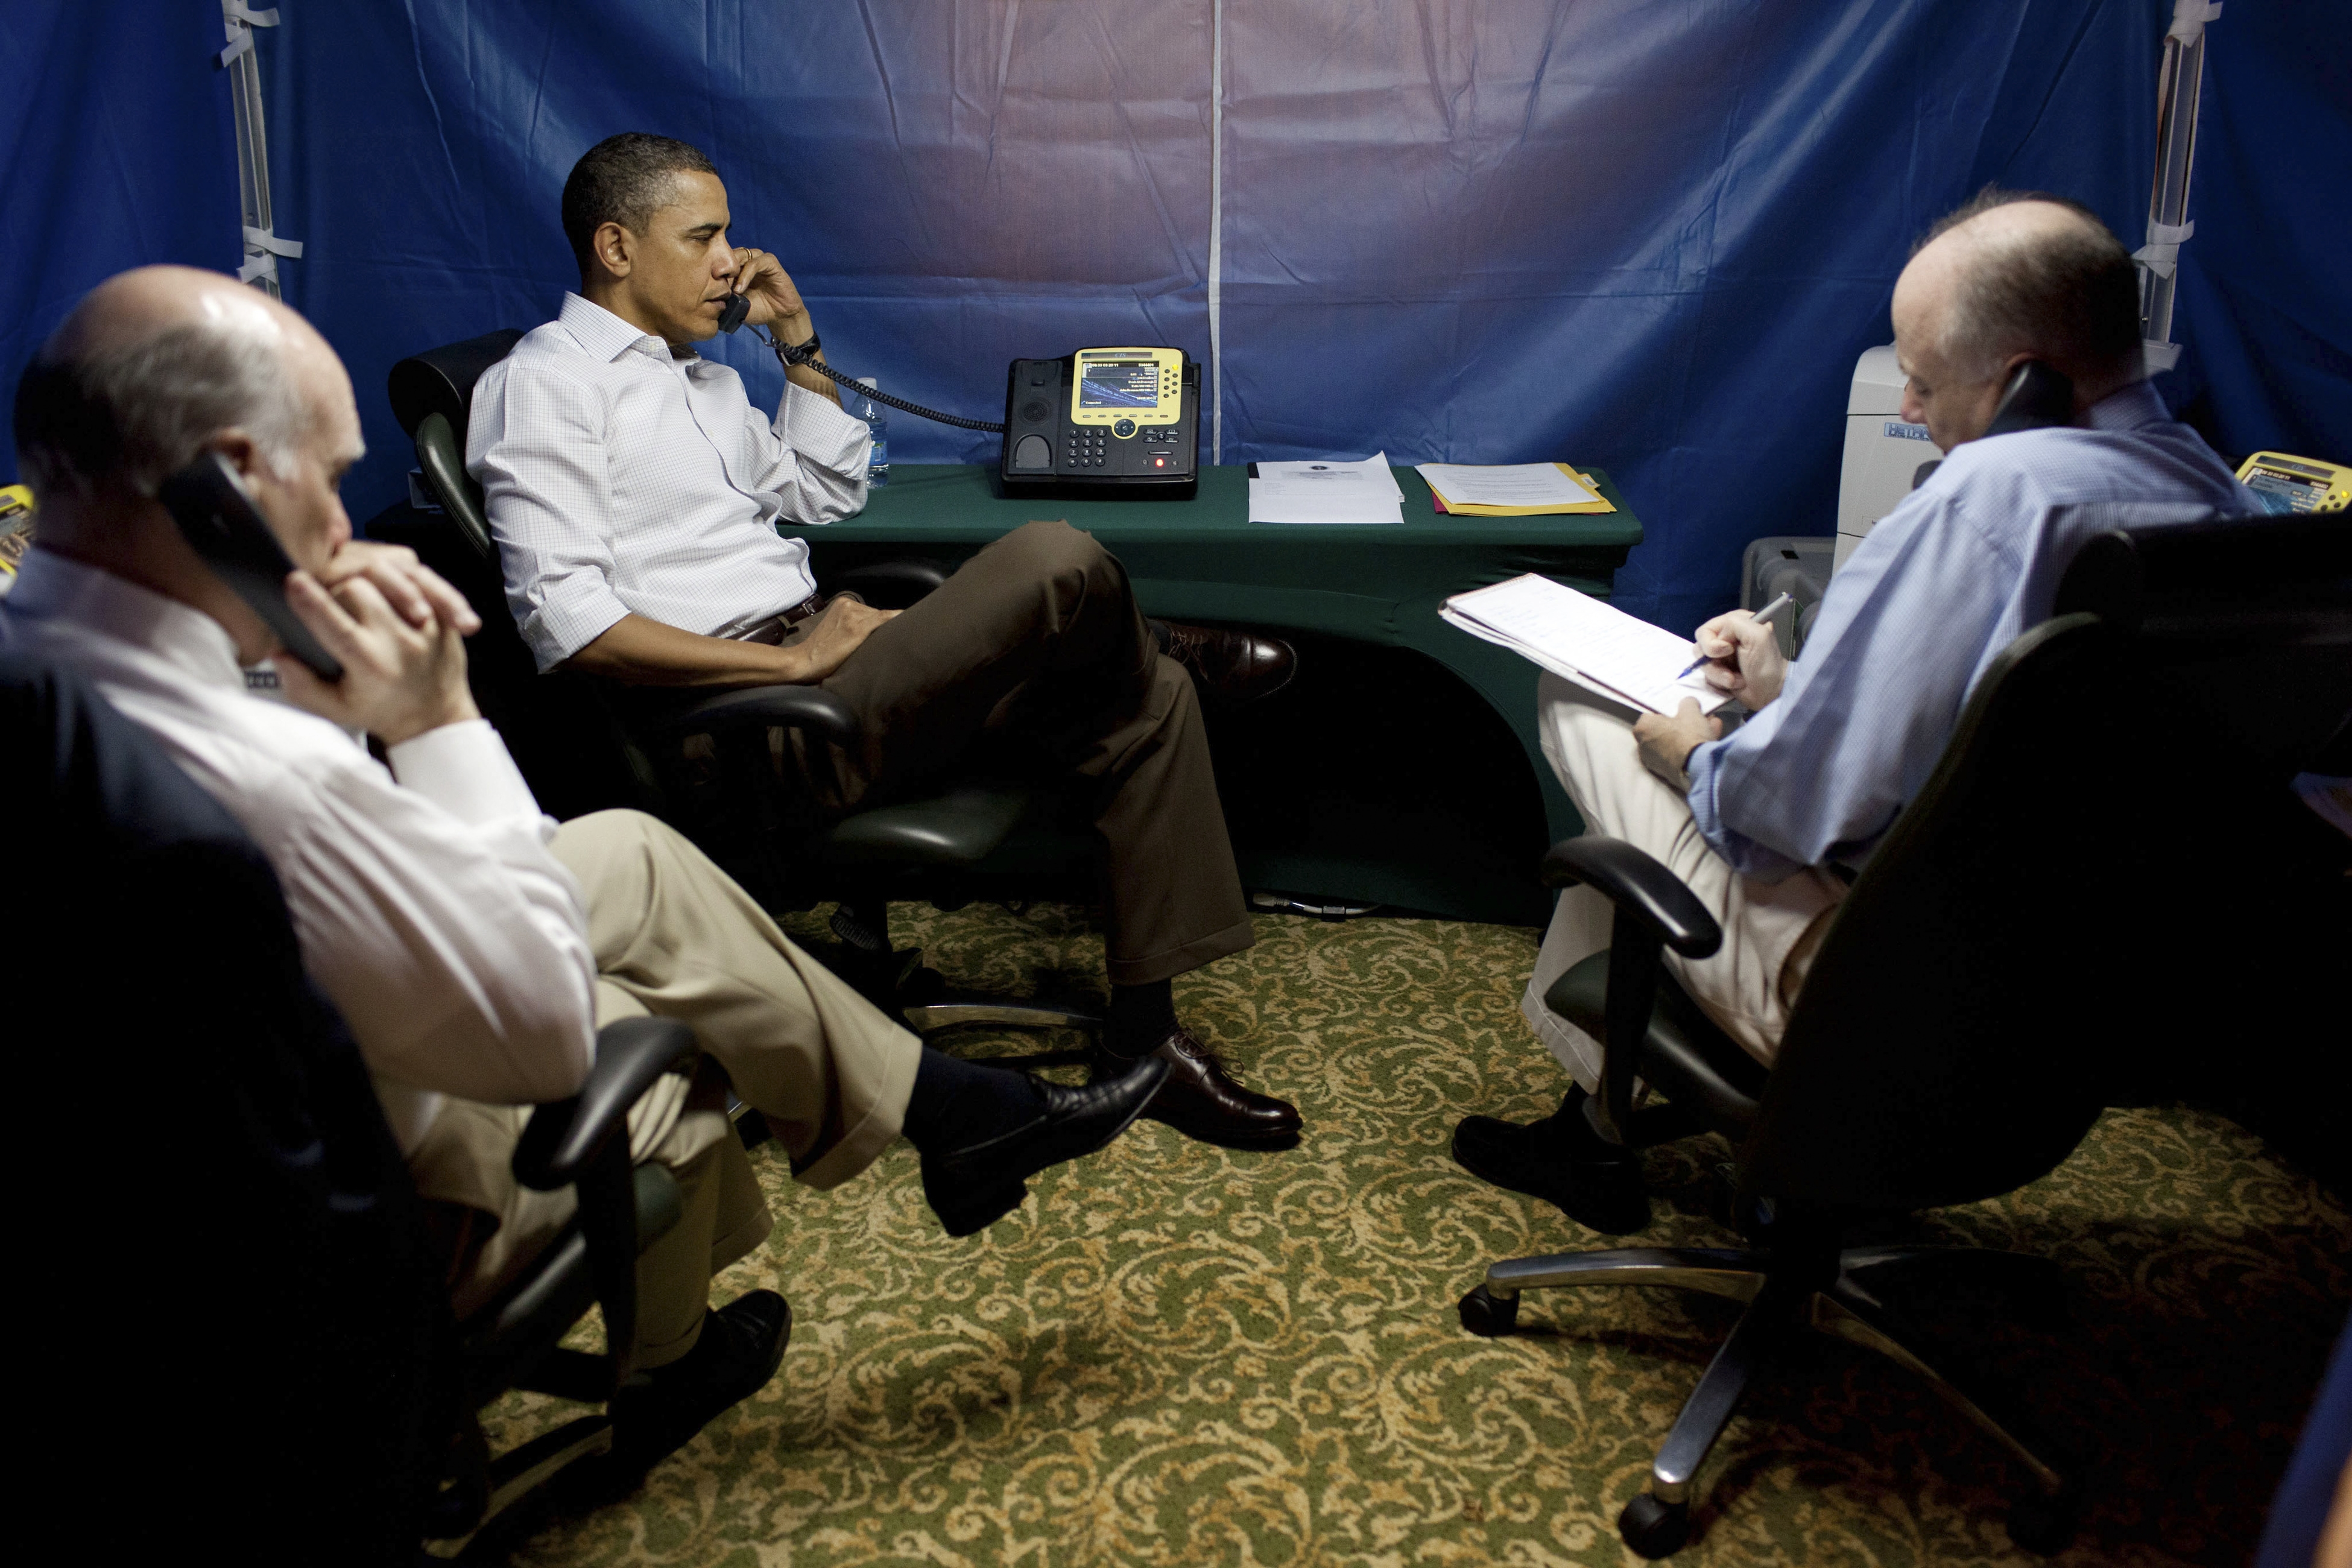 President Obama is briefed on the uprising in Libya during a conference call inside a secure tent set up near his hotel suite in Rio de Janeiro on March 20, 2011.